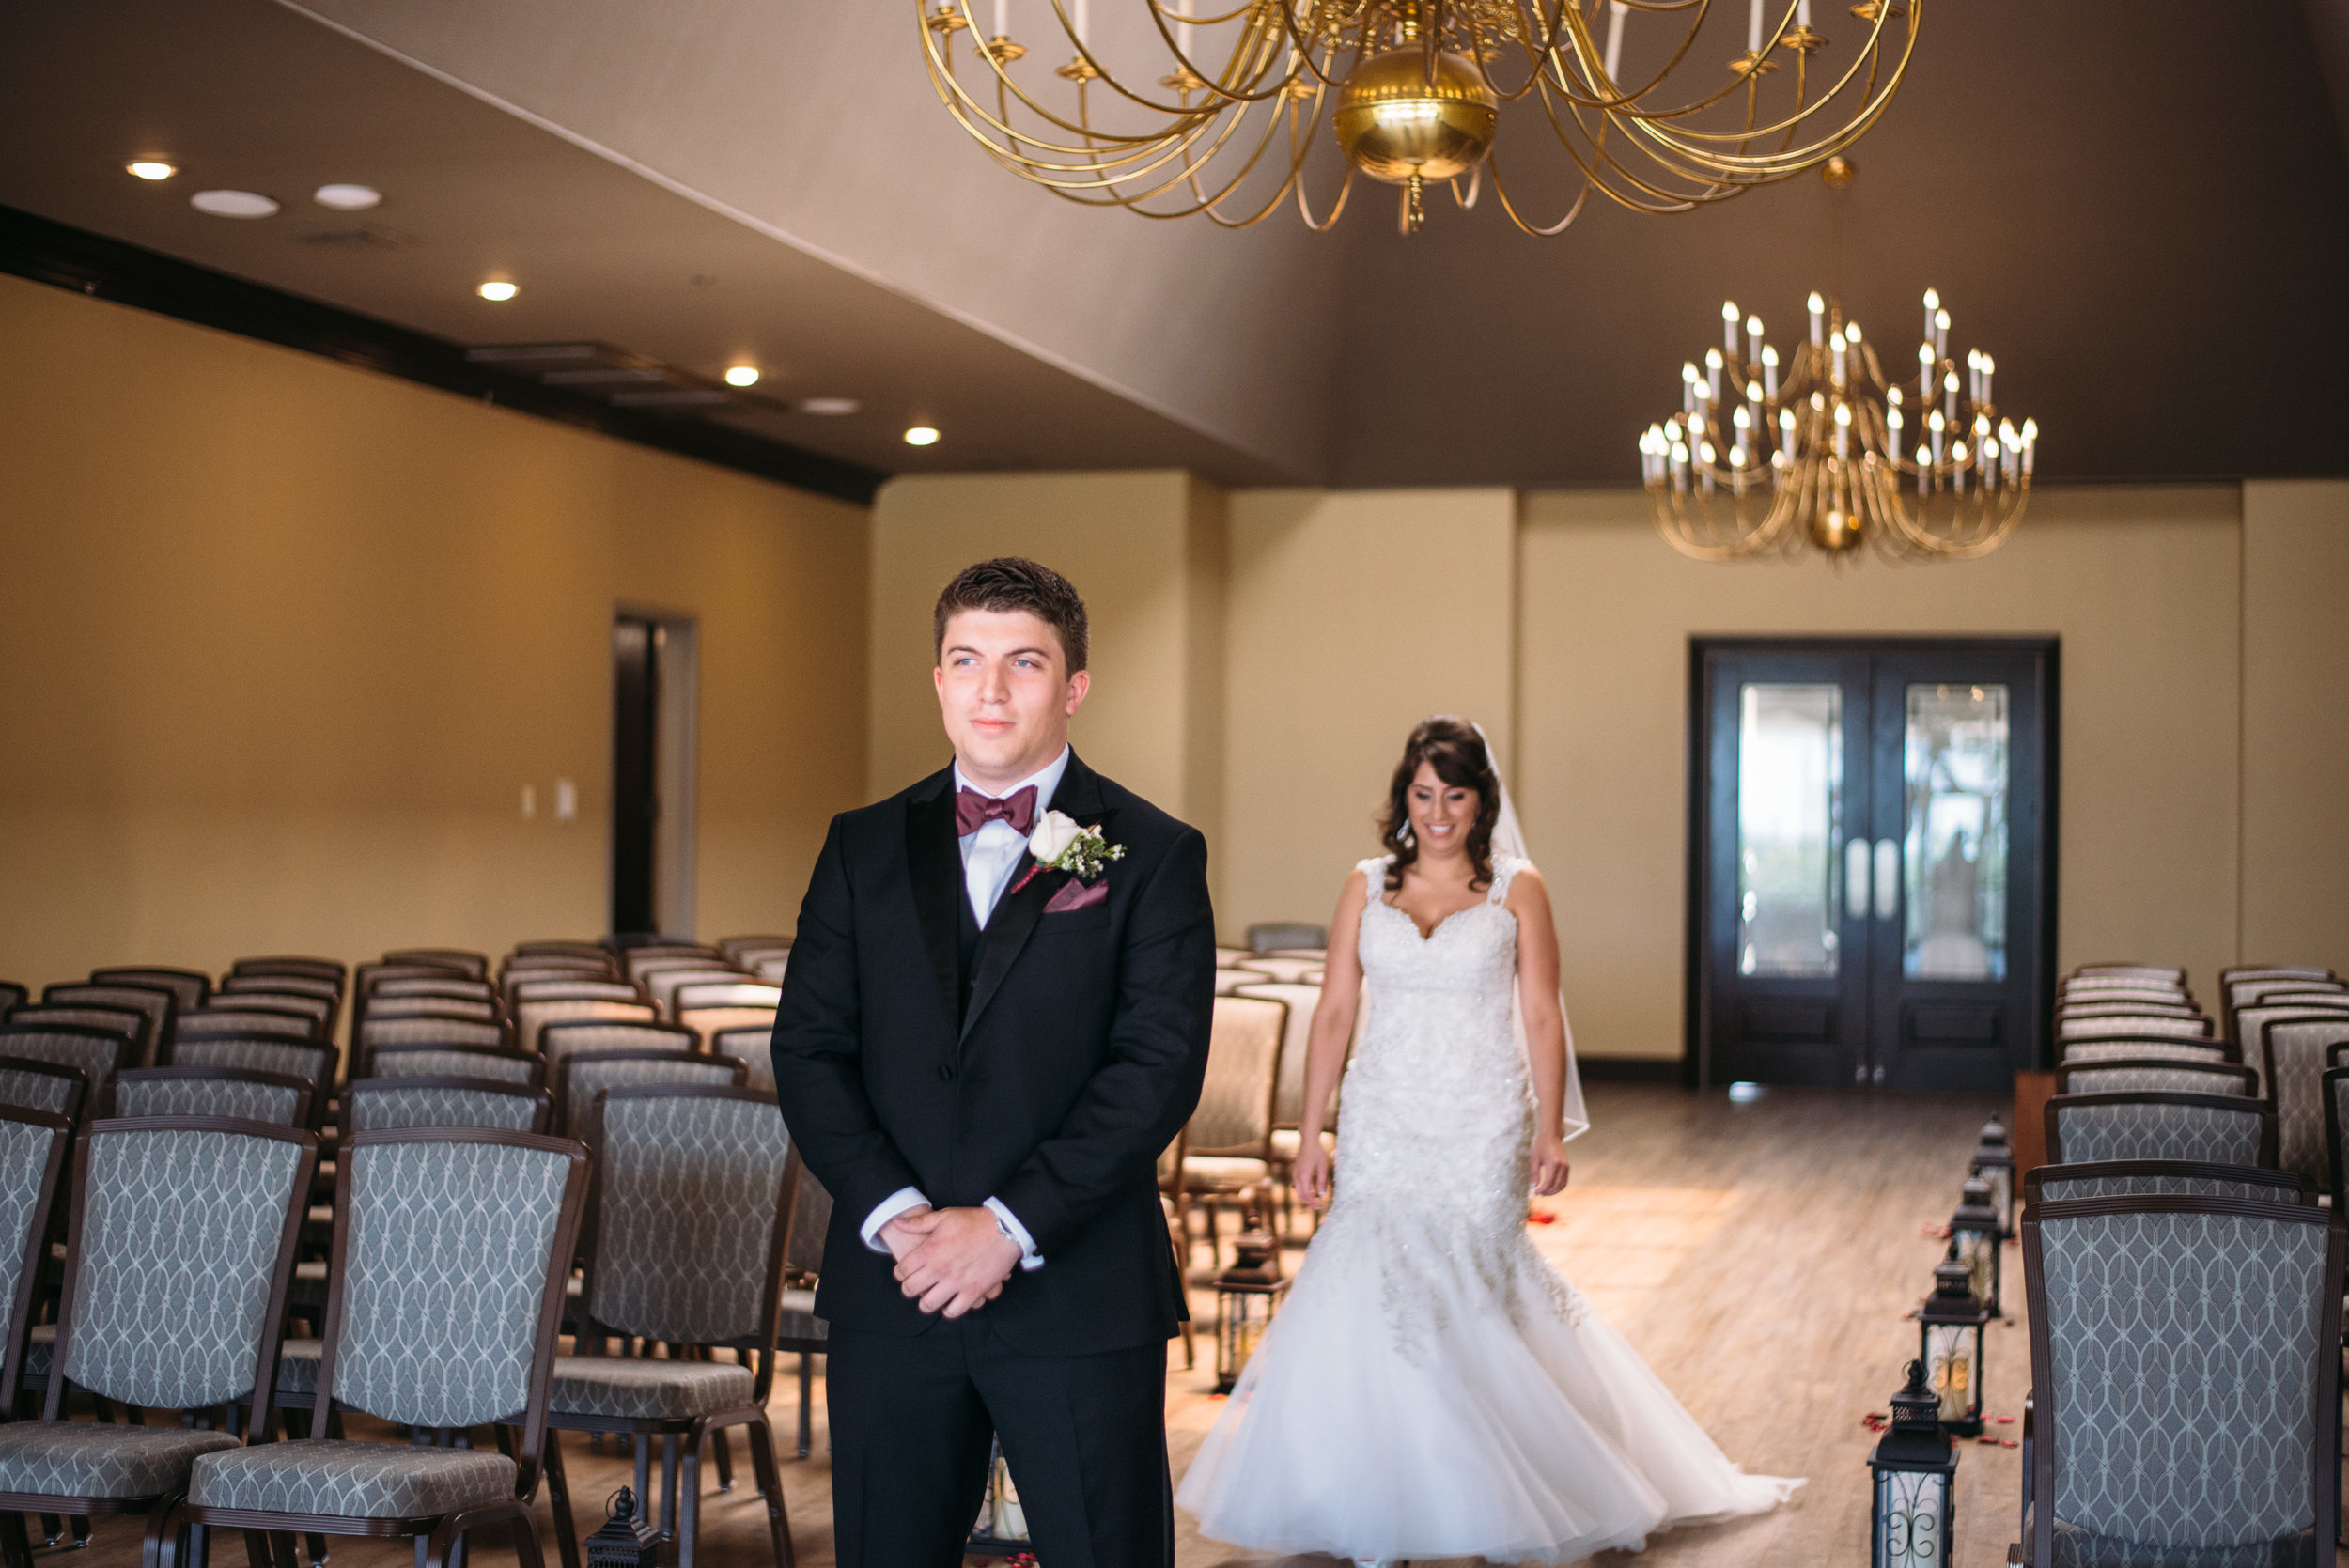 PhillipsEventCenter-AggieWedding-CollegeStationPhotographer_13.jpg